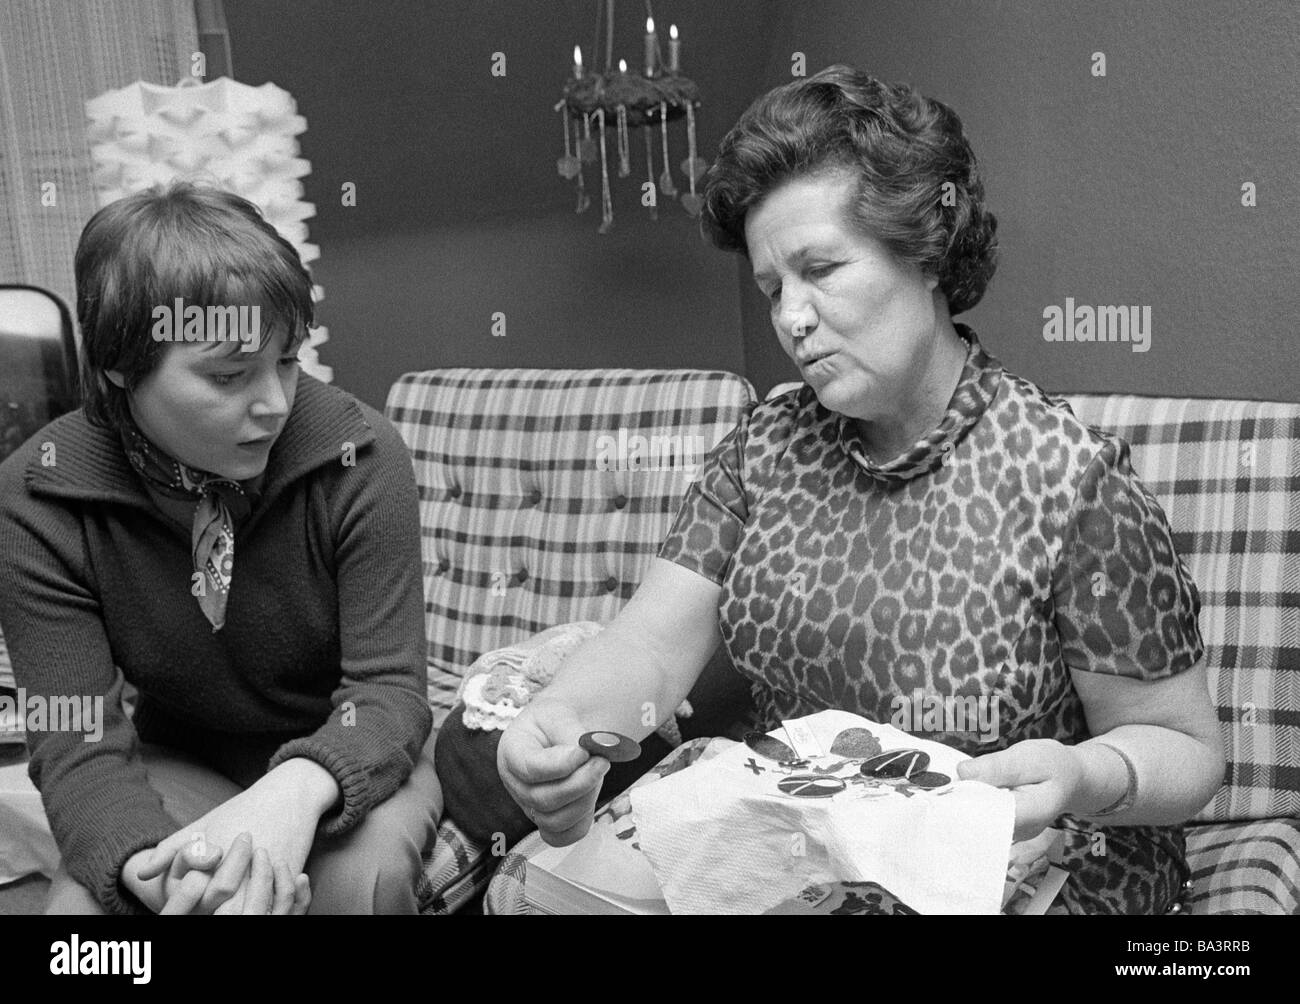 Seventies, black and white photo, people, older woman and young woman sit together in a living room and look at - Stock Image